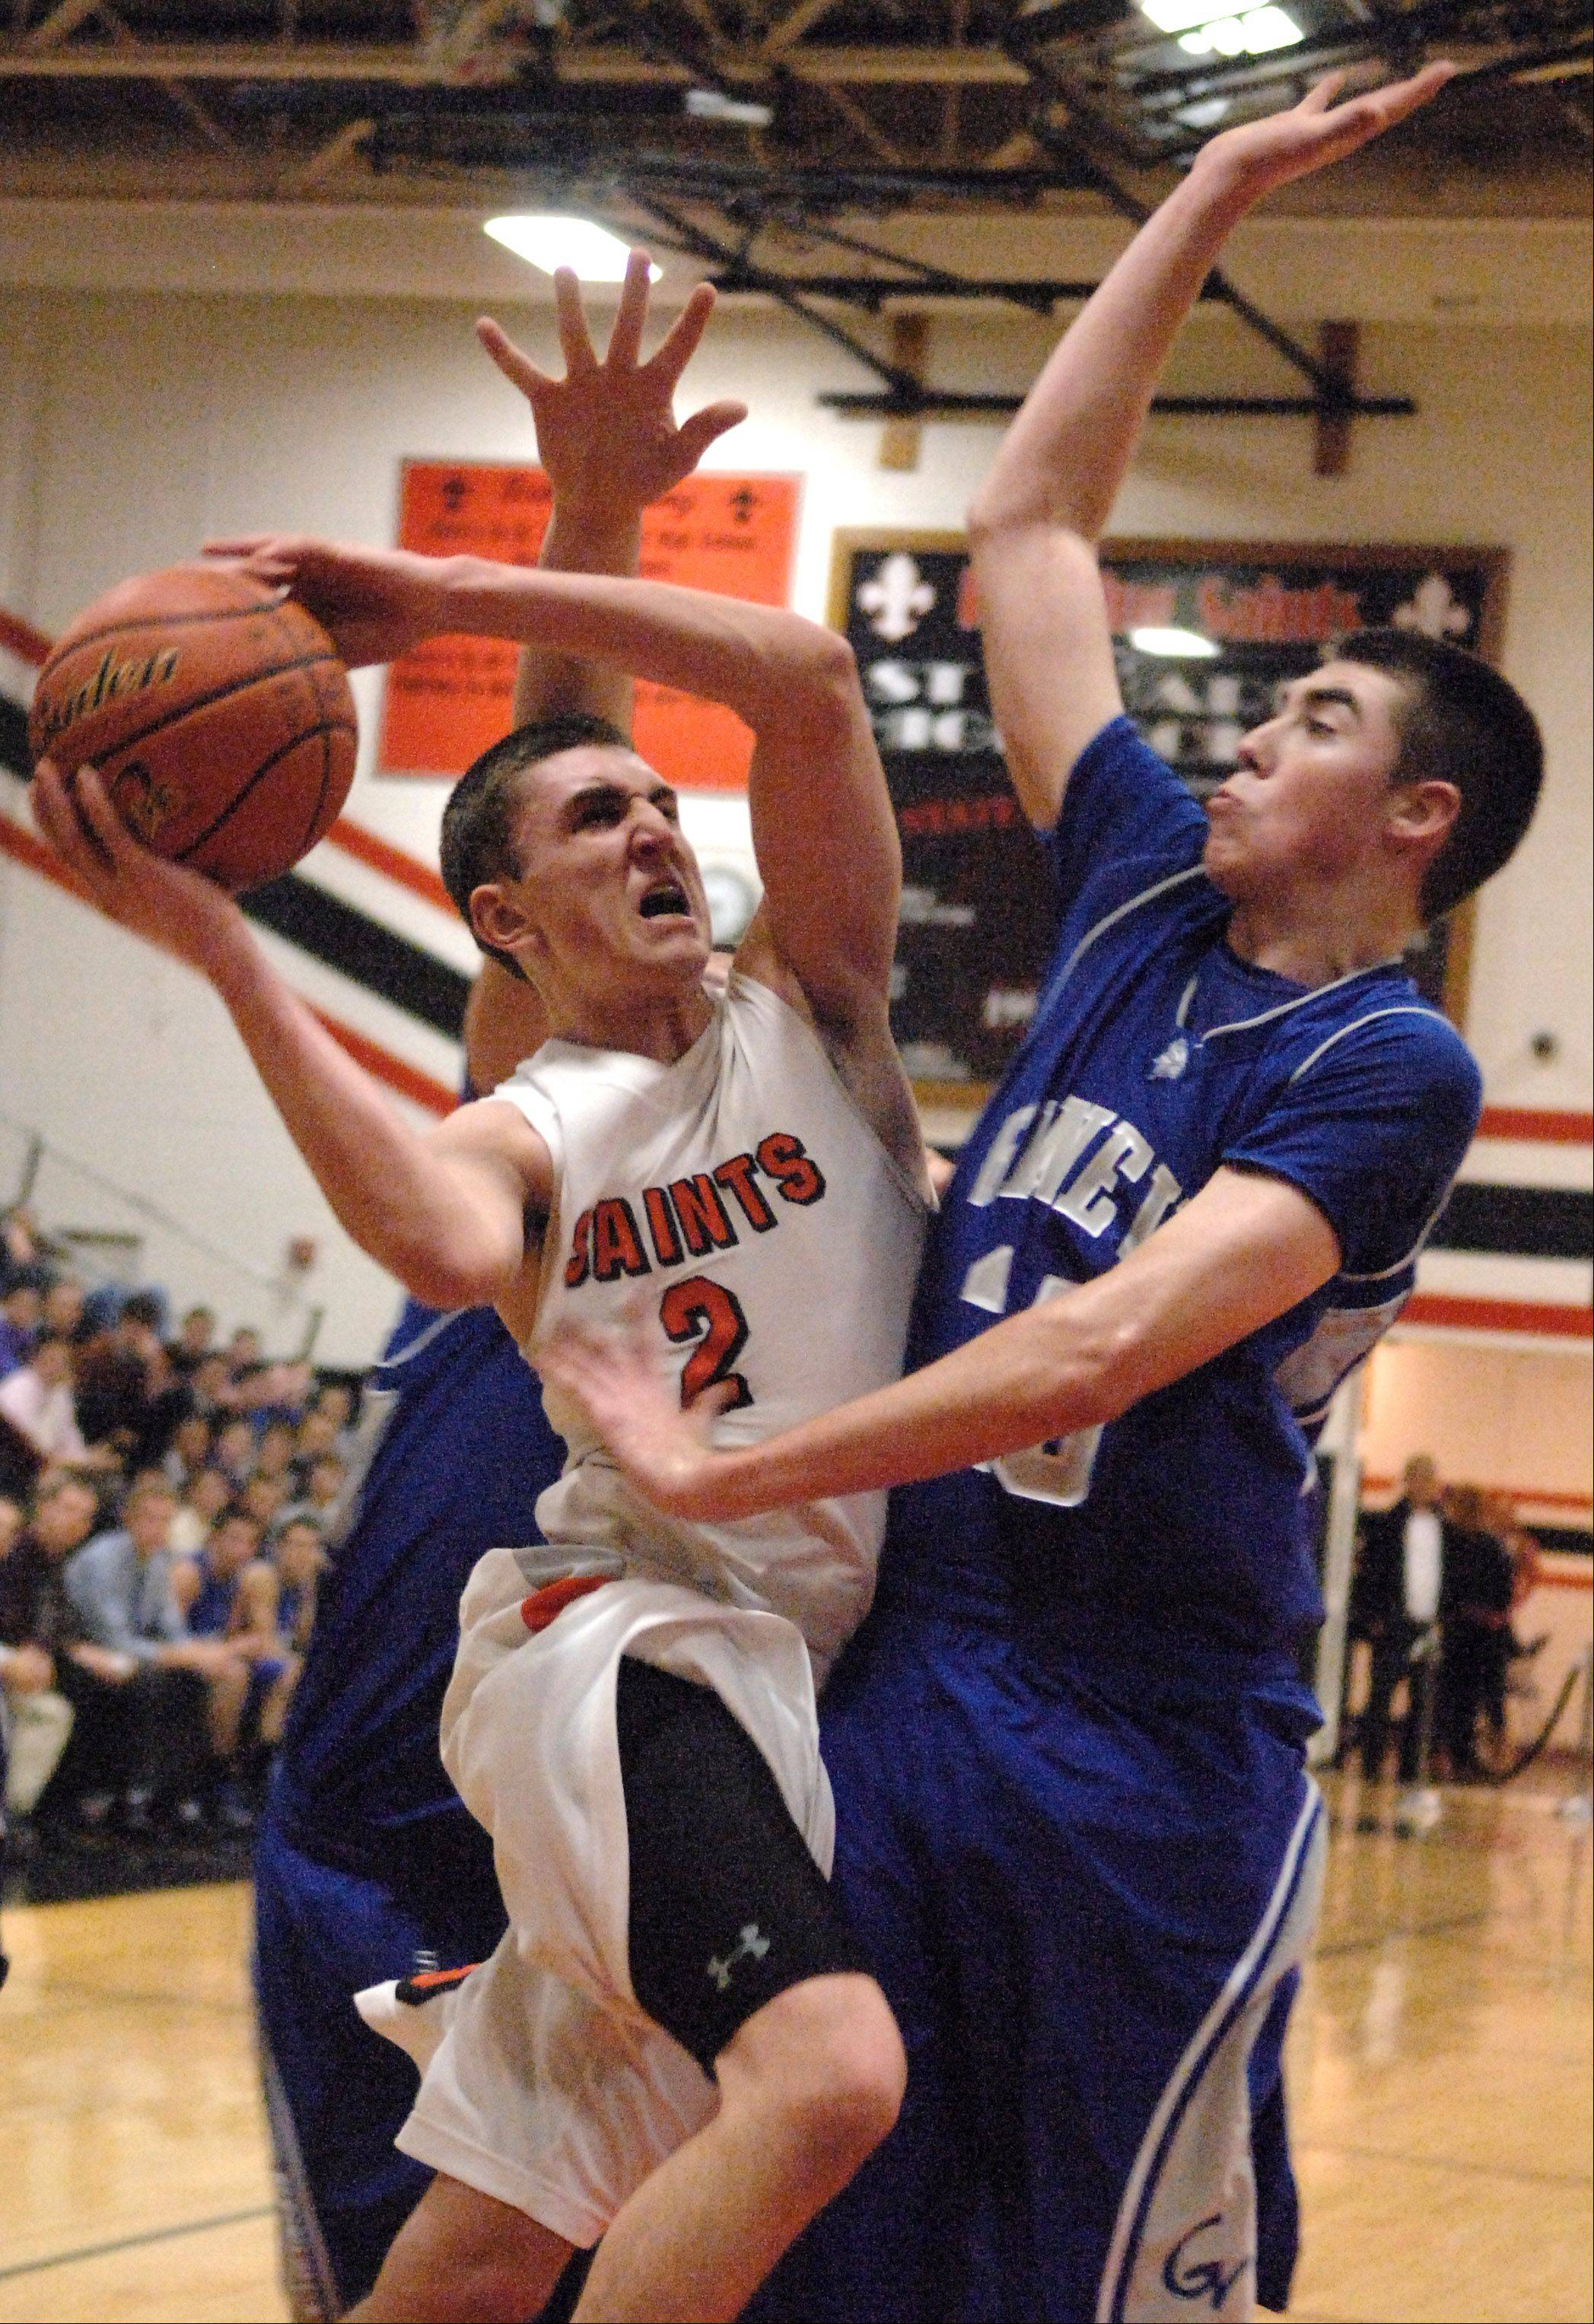 St. Charles East's Dom Adduci drives to the lane and scores despite a Geneva double-team effort Friday in St. Charles.